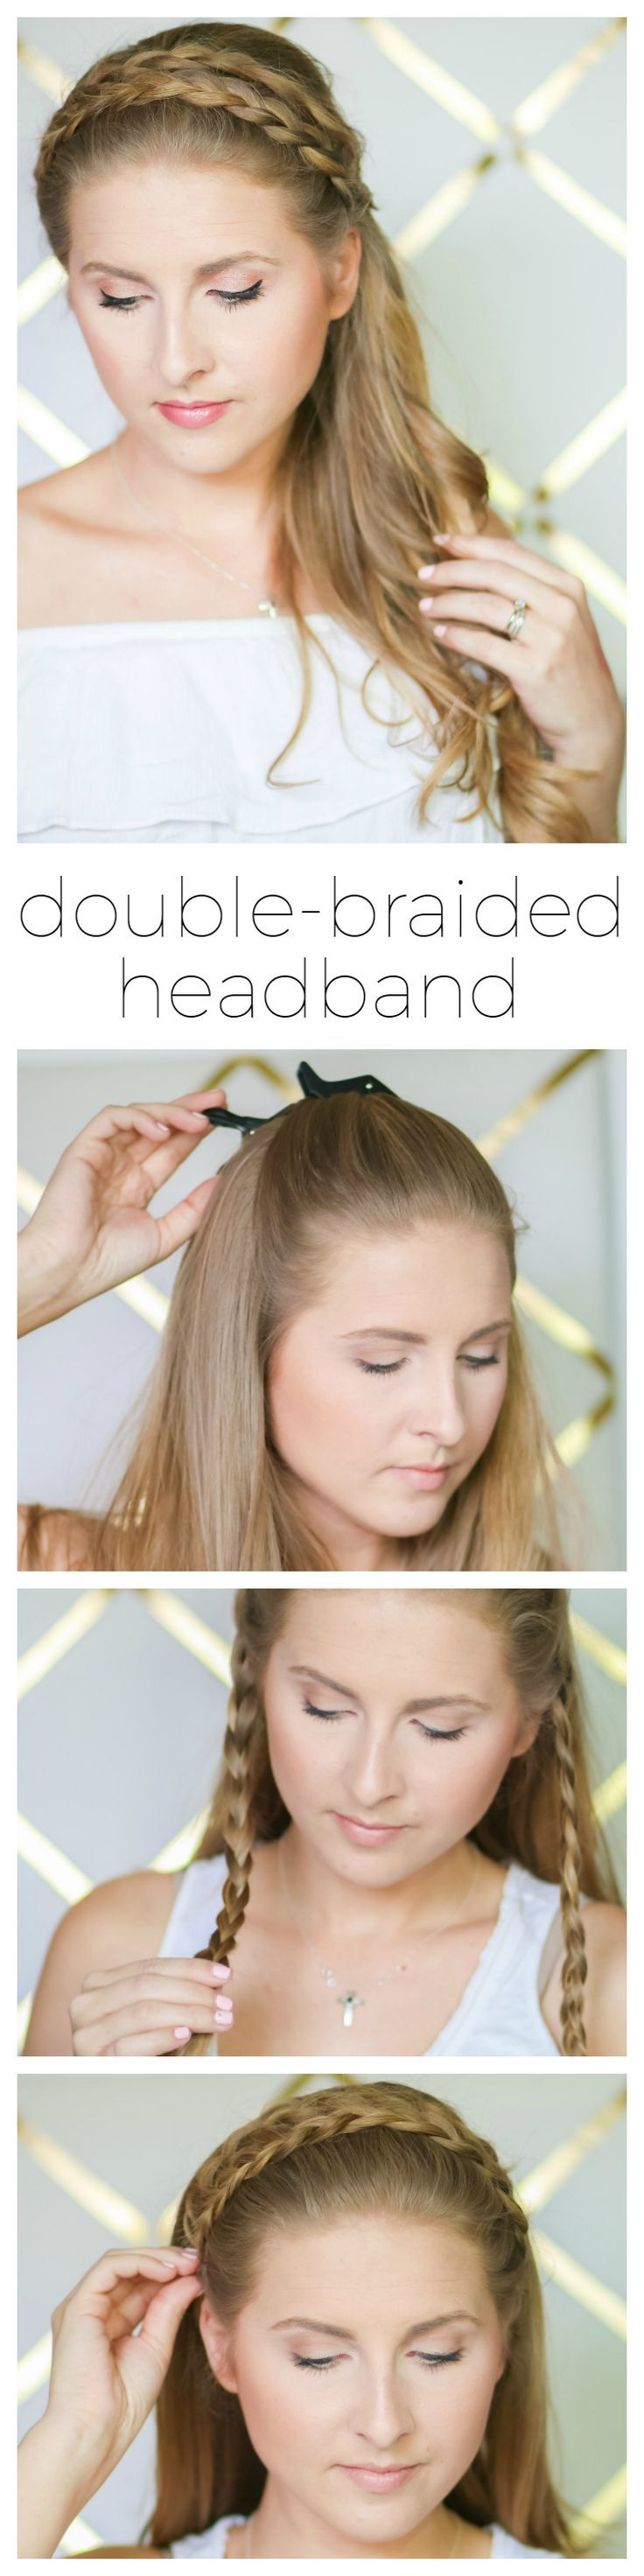 Learn how to create a cute braided headband hairstyle that's perfect for summer days outdoors. This simple, step-by-step tutorial by Ashley Brooke from ashleybrookenicho... is quick and easy! I'm also sharing one of favorite new summer hair products from @Suave Beauty! #suavebeliever #sponsored